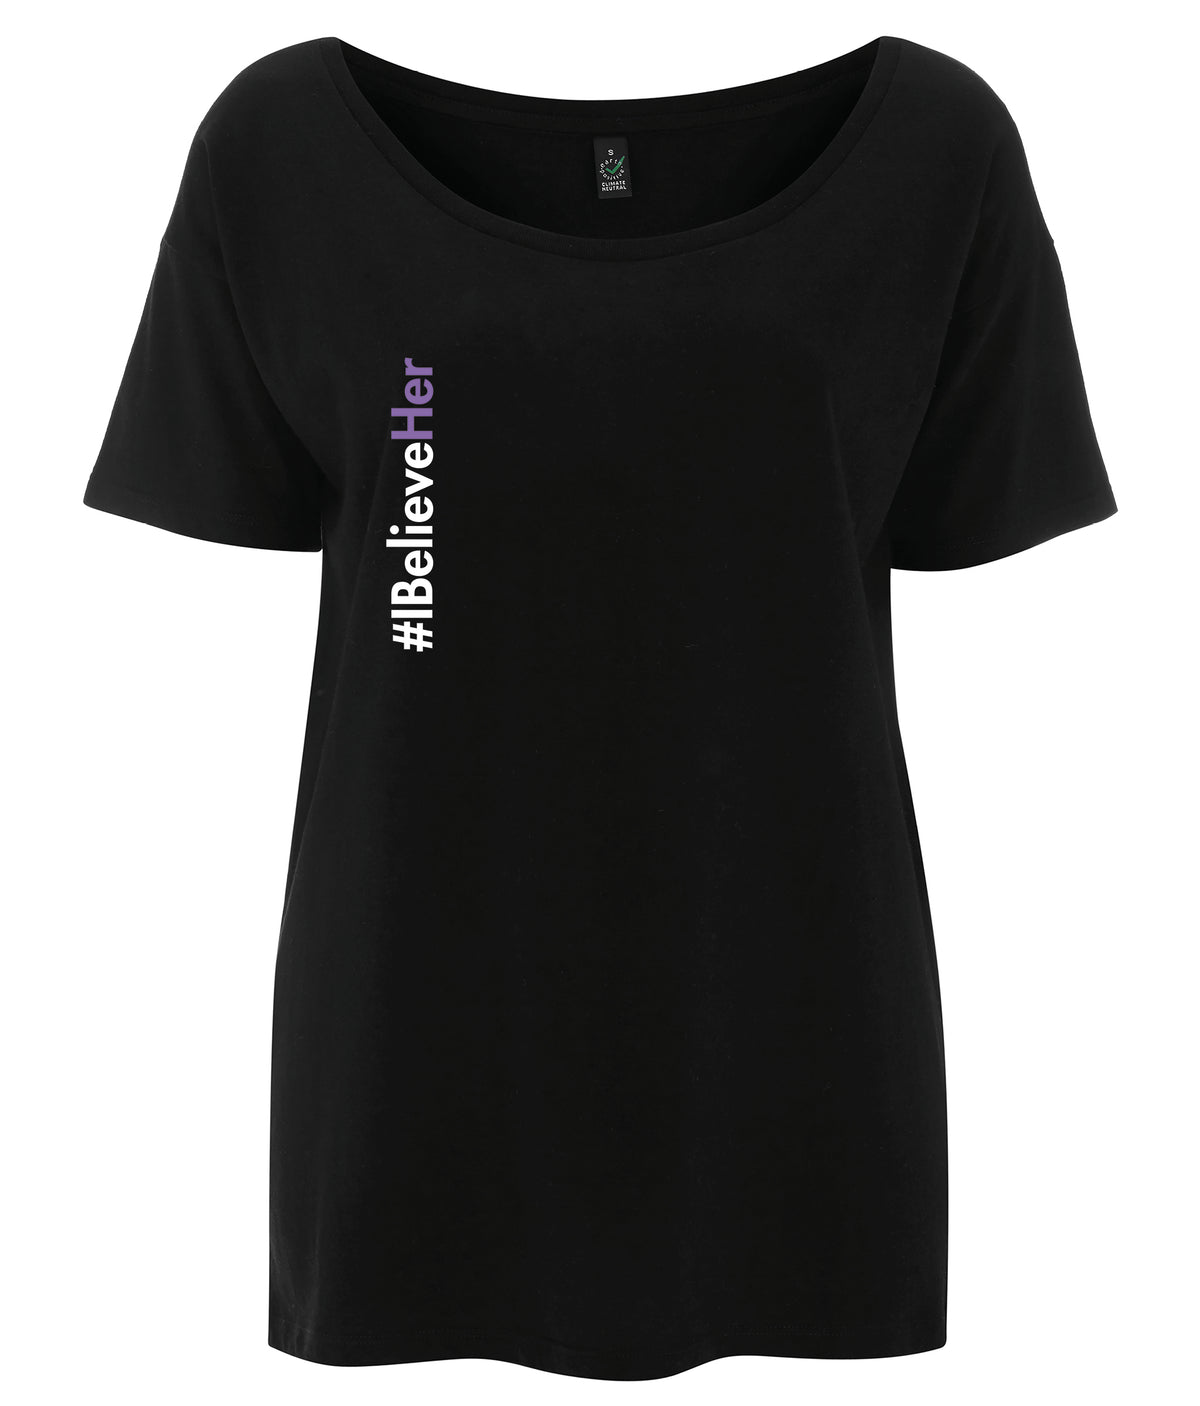 #IBelieveHer Tencel Blend Oversized Feminist T Shirt Black